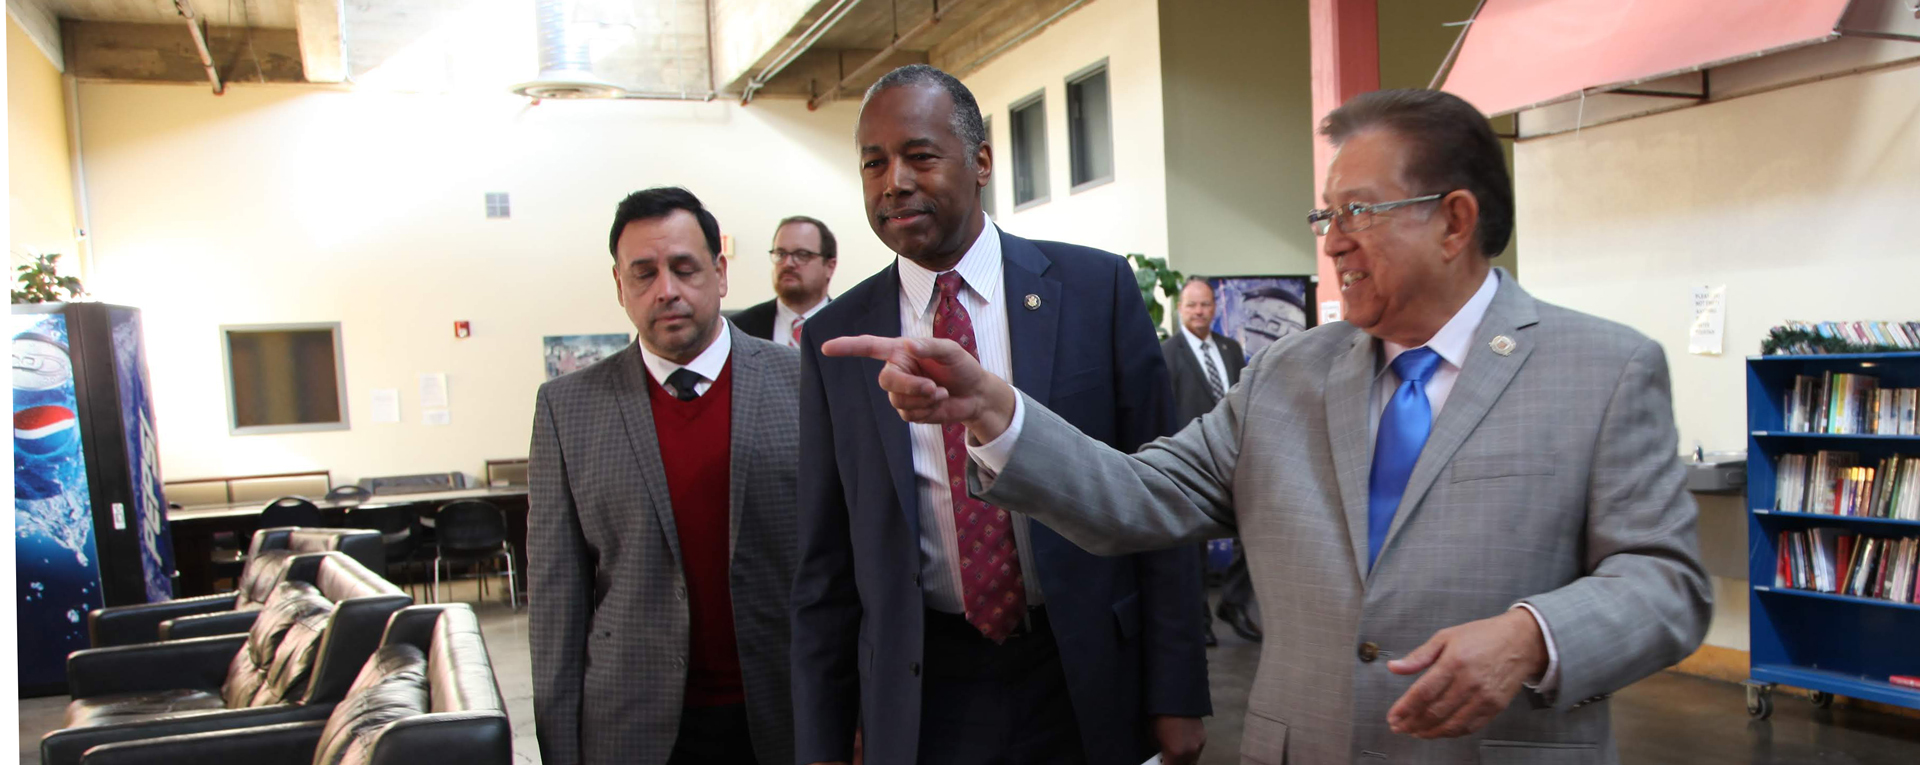 HUD secretary announces grant to help homeless veterans